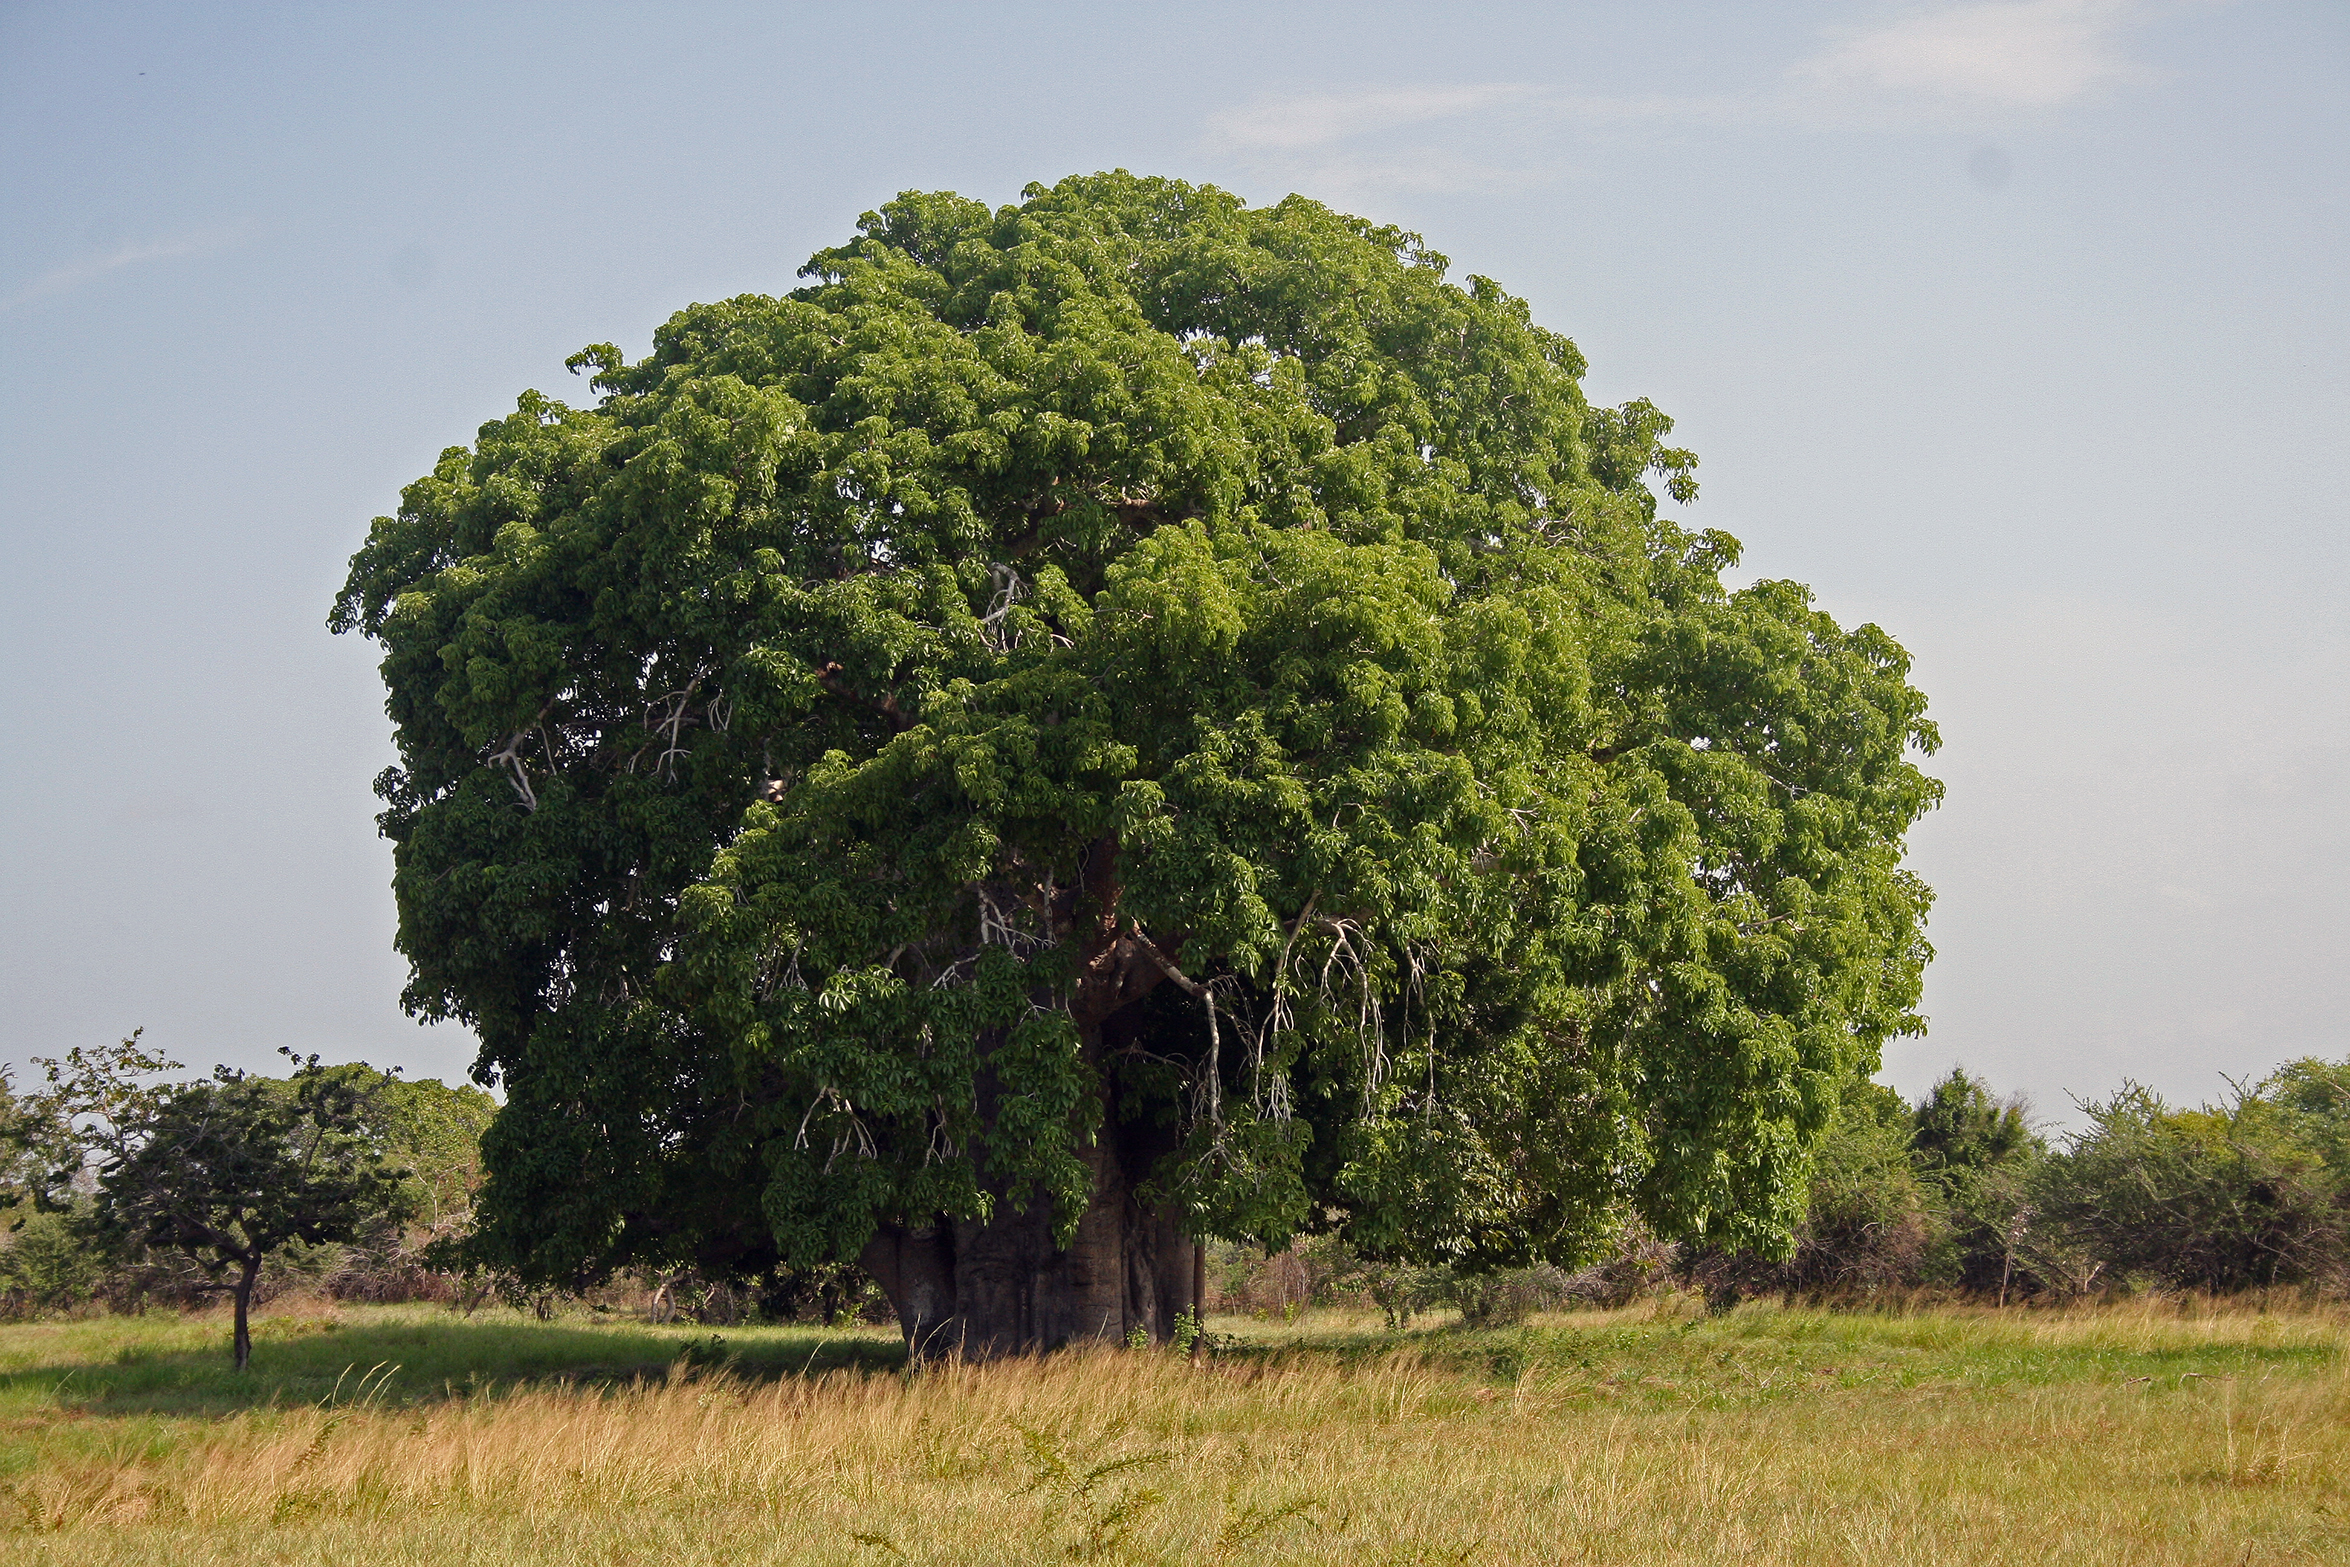 Baobab (Adansonia digitata) in Bagamoyo, Tanzania. Photo taken by Muhammad Mahdi Karim on January 9, 2009